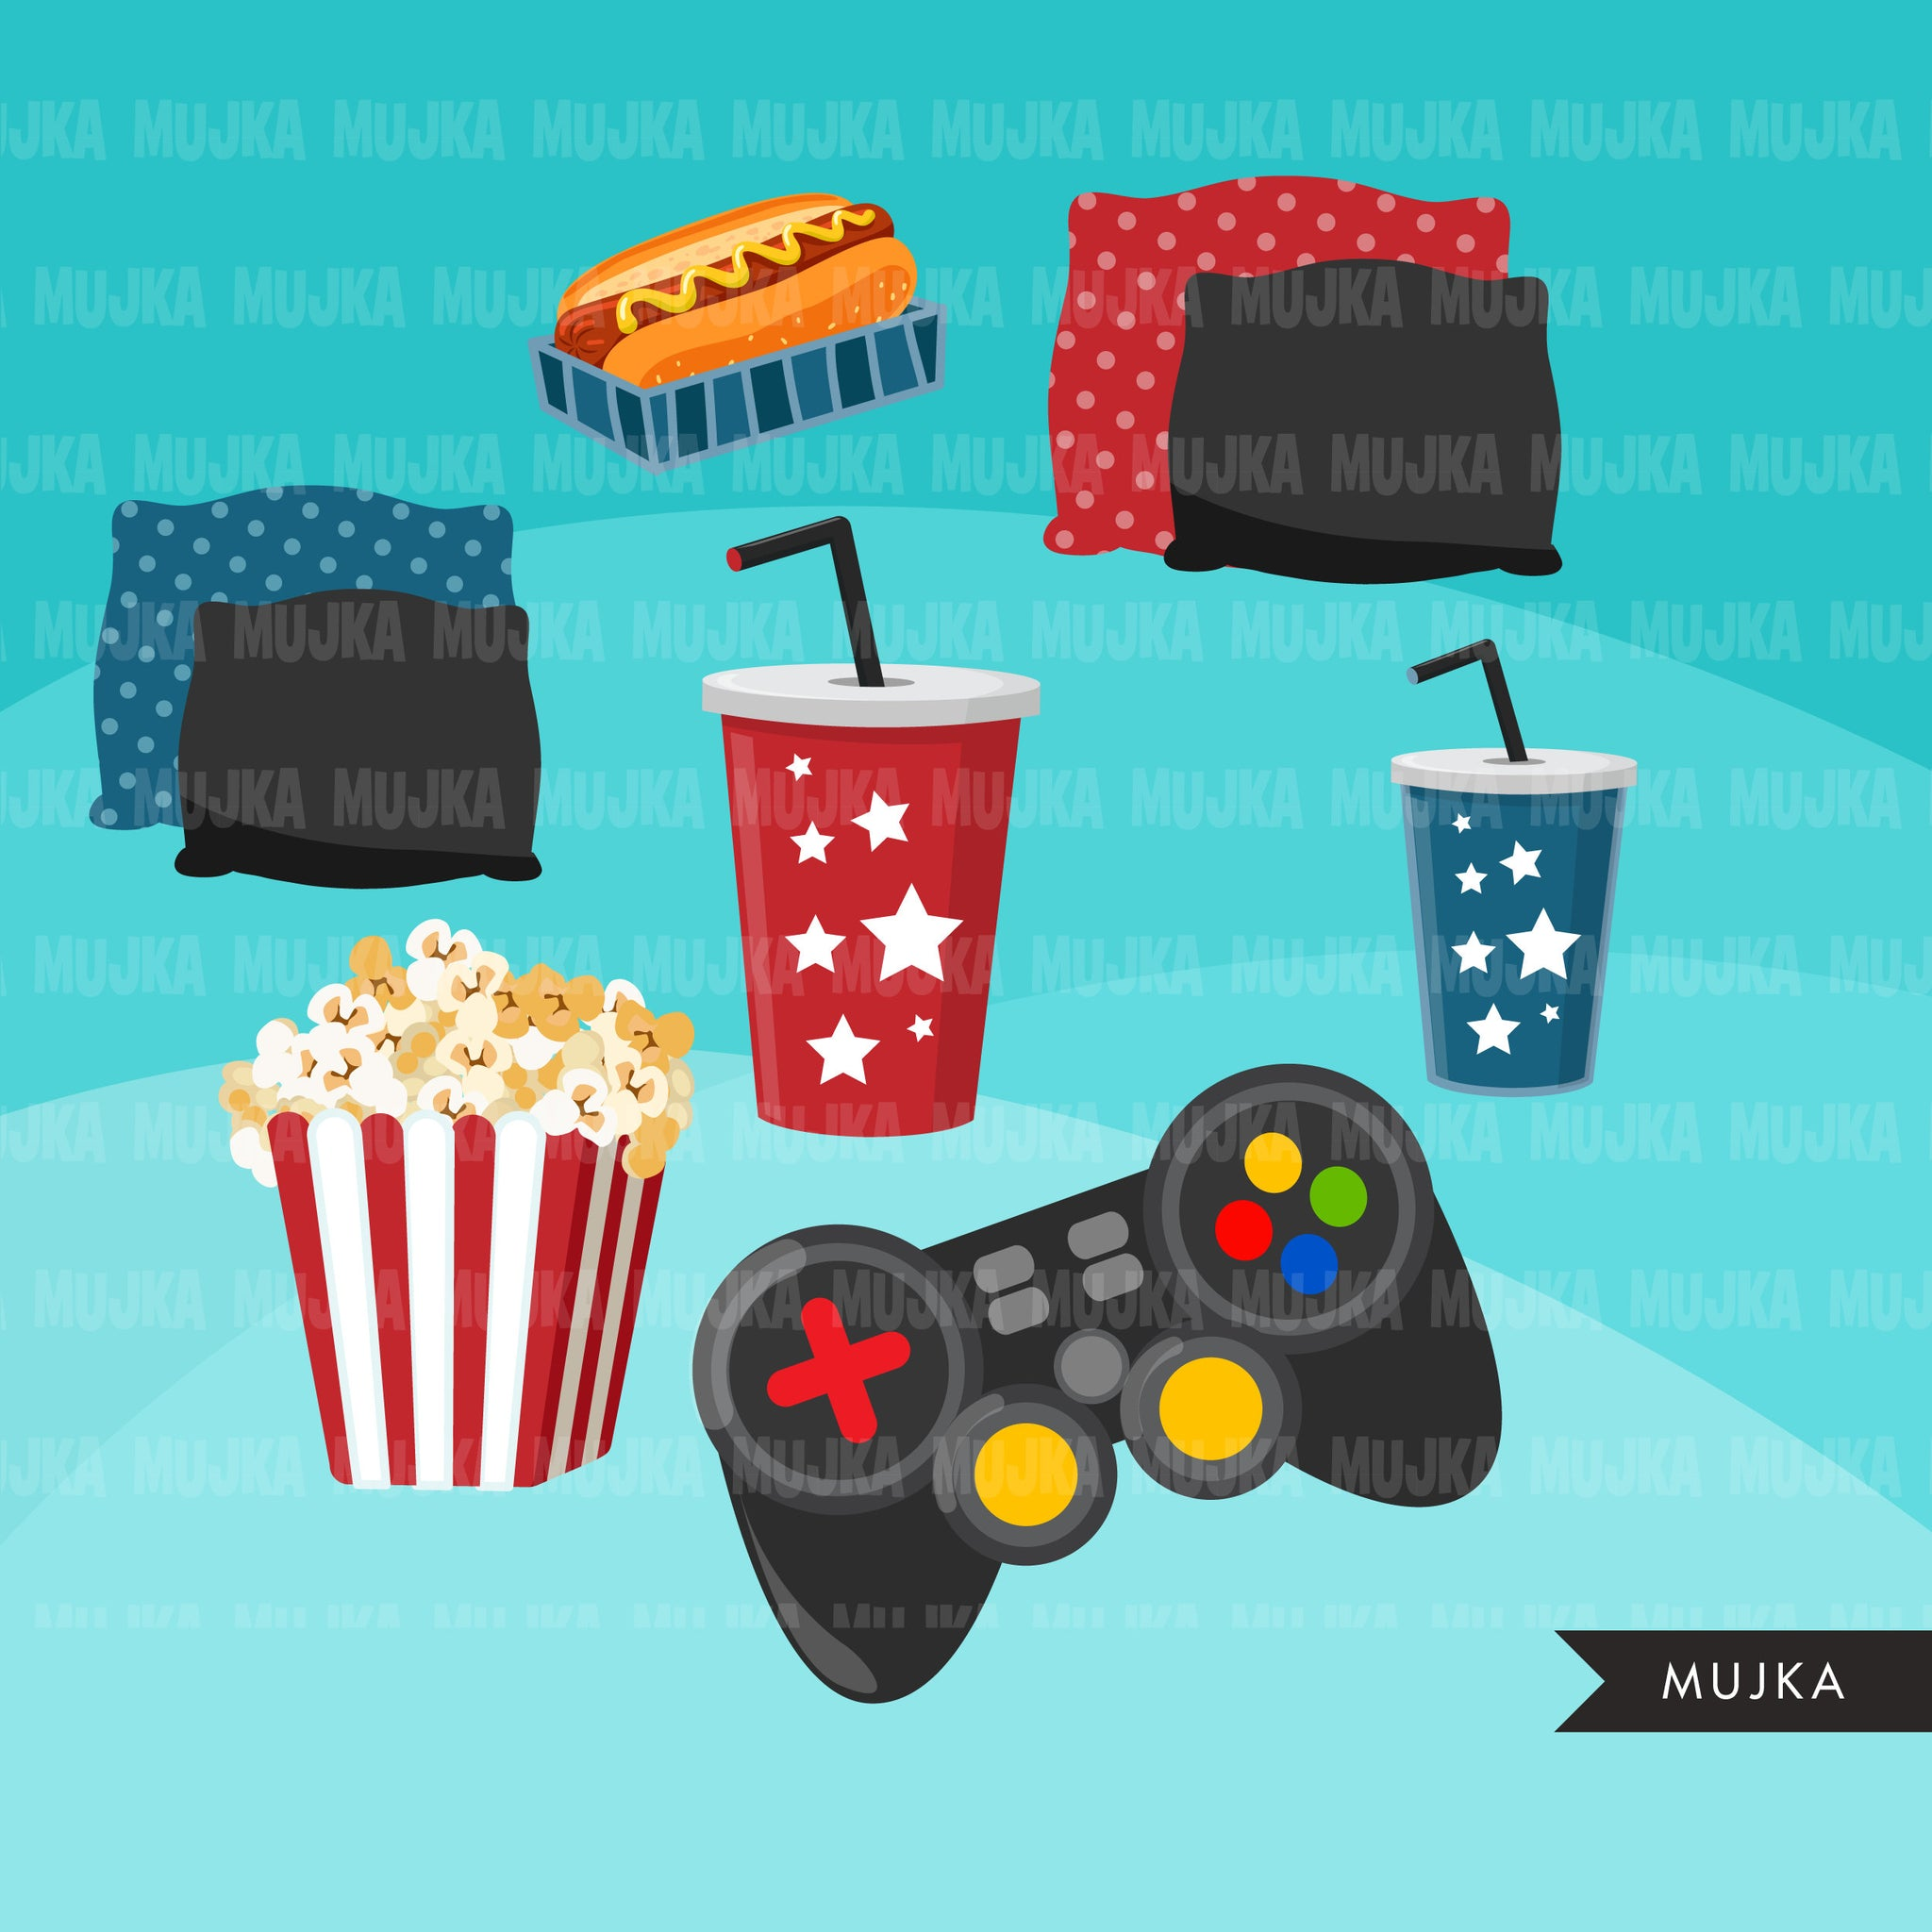 Video game clipart bundle, Gamer boys, gamer Girls, house party, game night birthday, popcorn hotdog png afro girl clip art